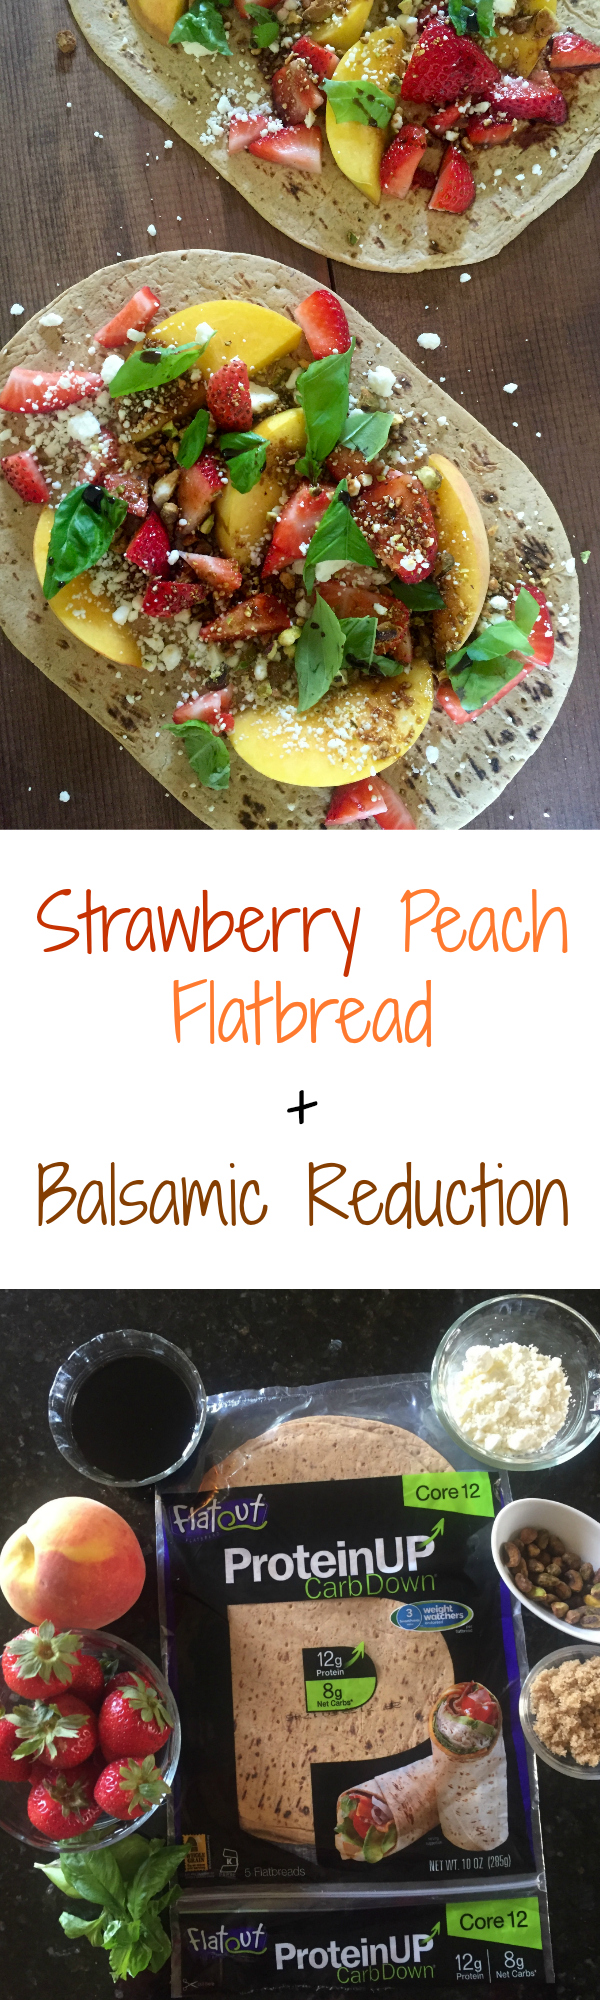 Strawberry Peach Flatbread